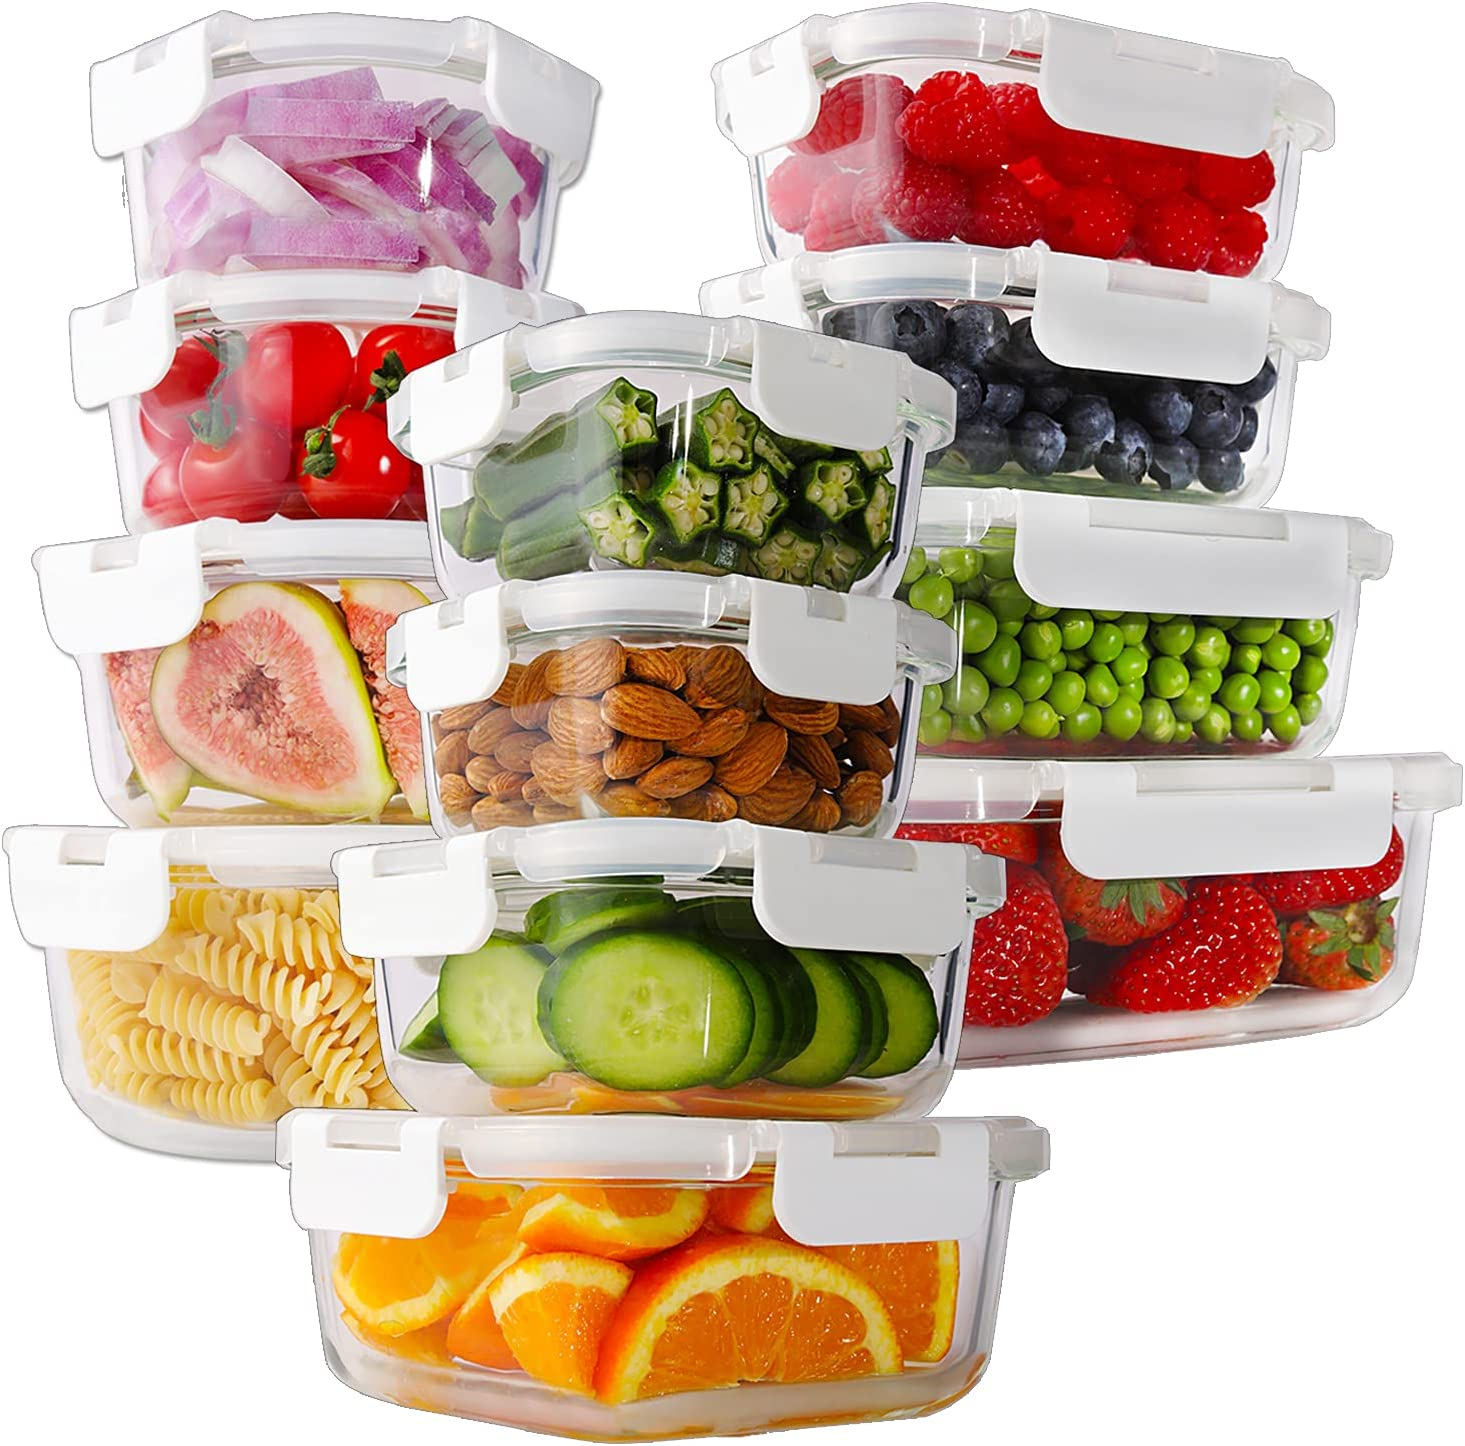 Bayco 24 Piece Glass Food Storage Containers $29.99 Coupon